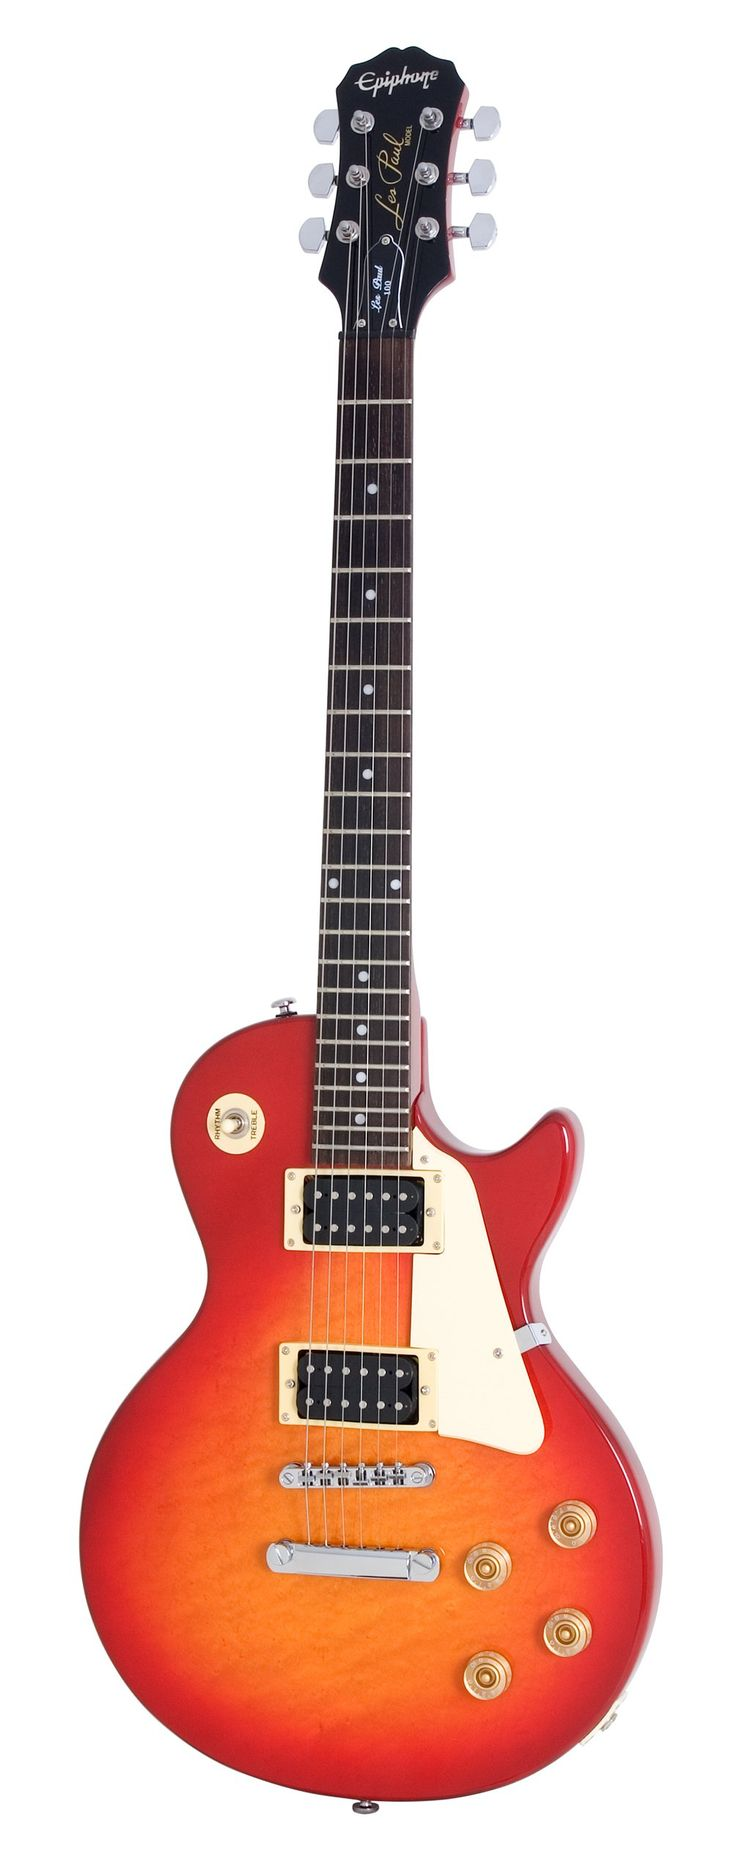 Epiphone Les Paul-100 Electric Guitar, Heritage Cherry Sunburst